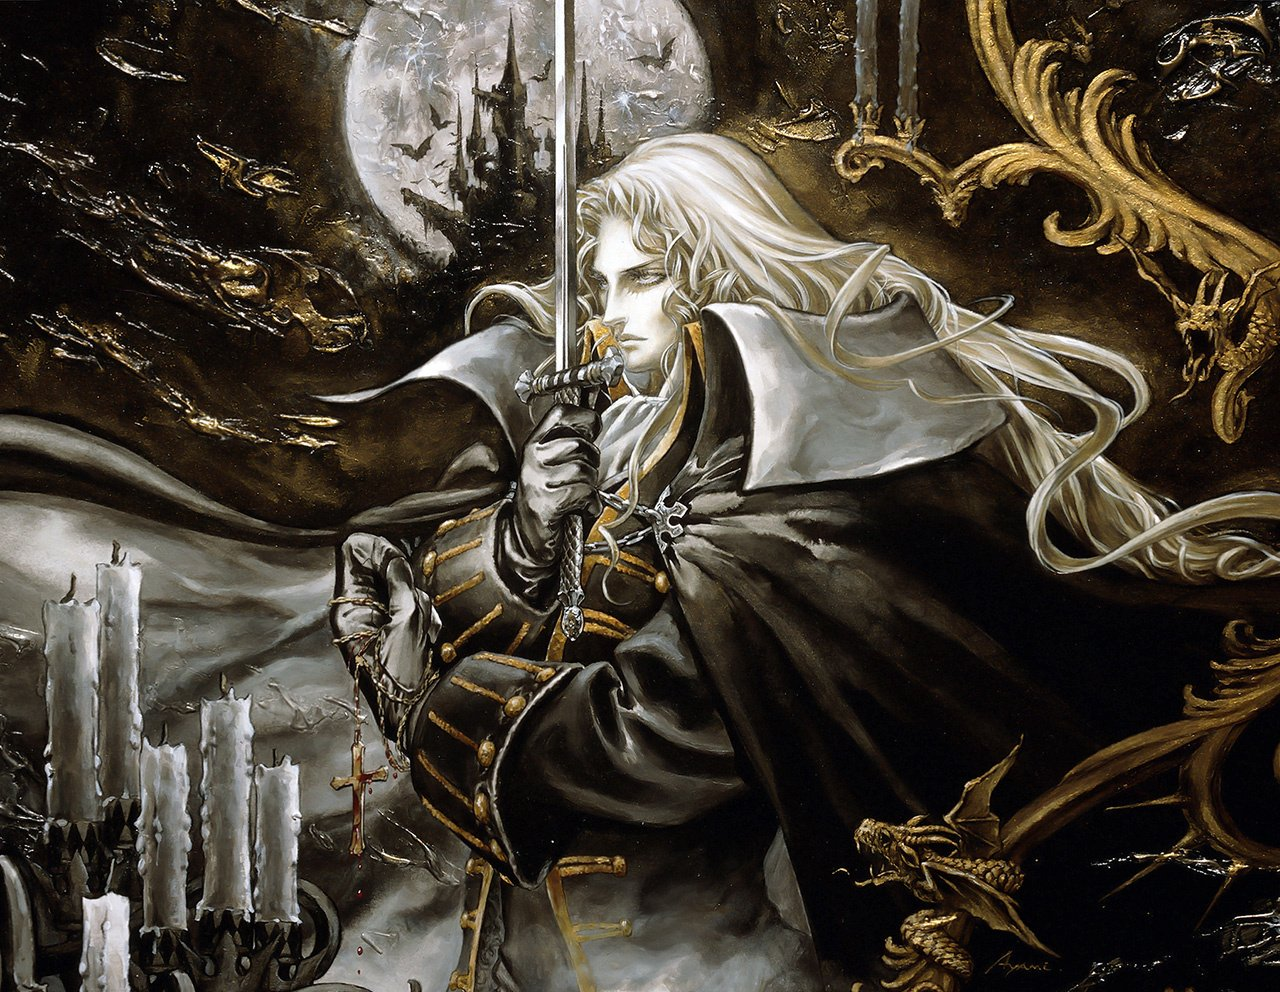 Caption: A depiction of protagonist Alucard by artist Ayami Kojima for the 1997 game Castlevania: Symphony of the Night. Composer Michiru Yamane wrote the original score.